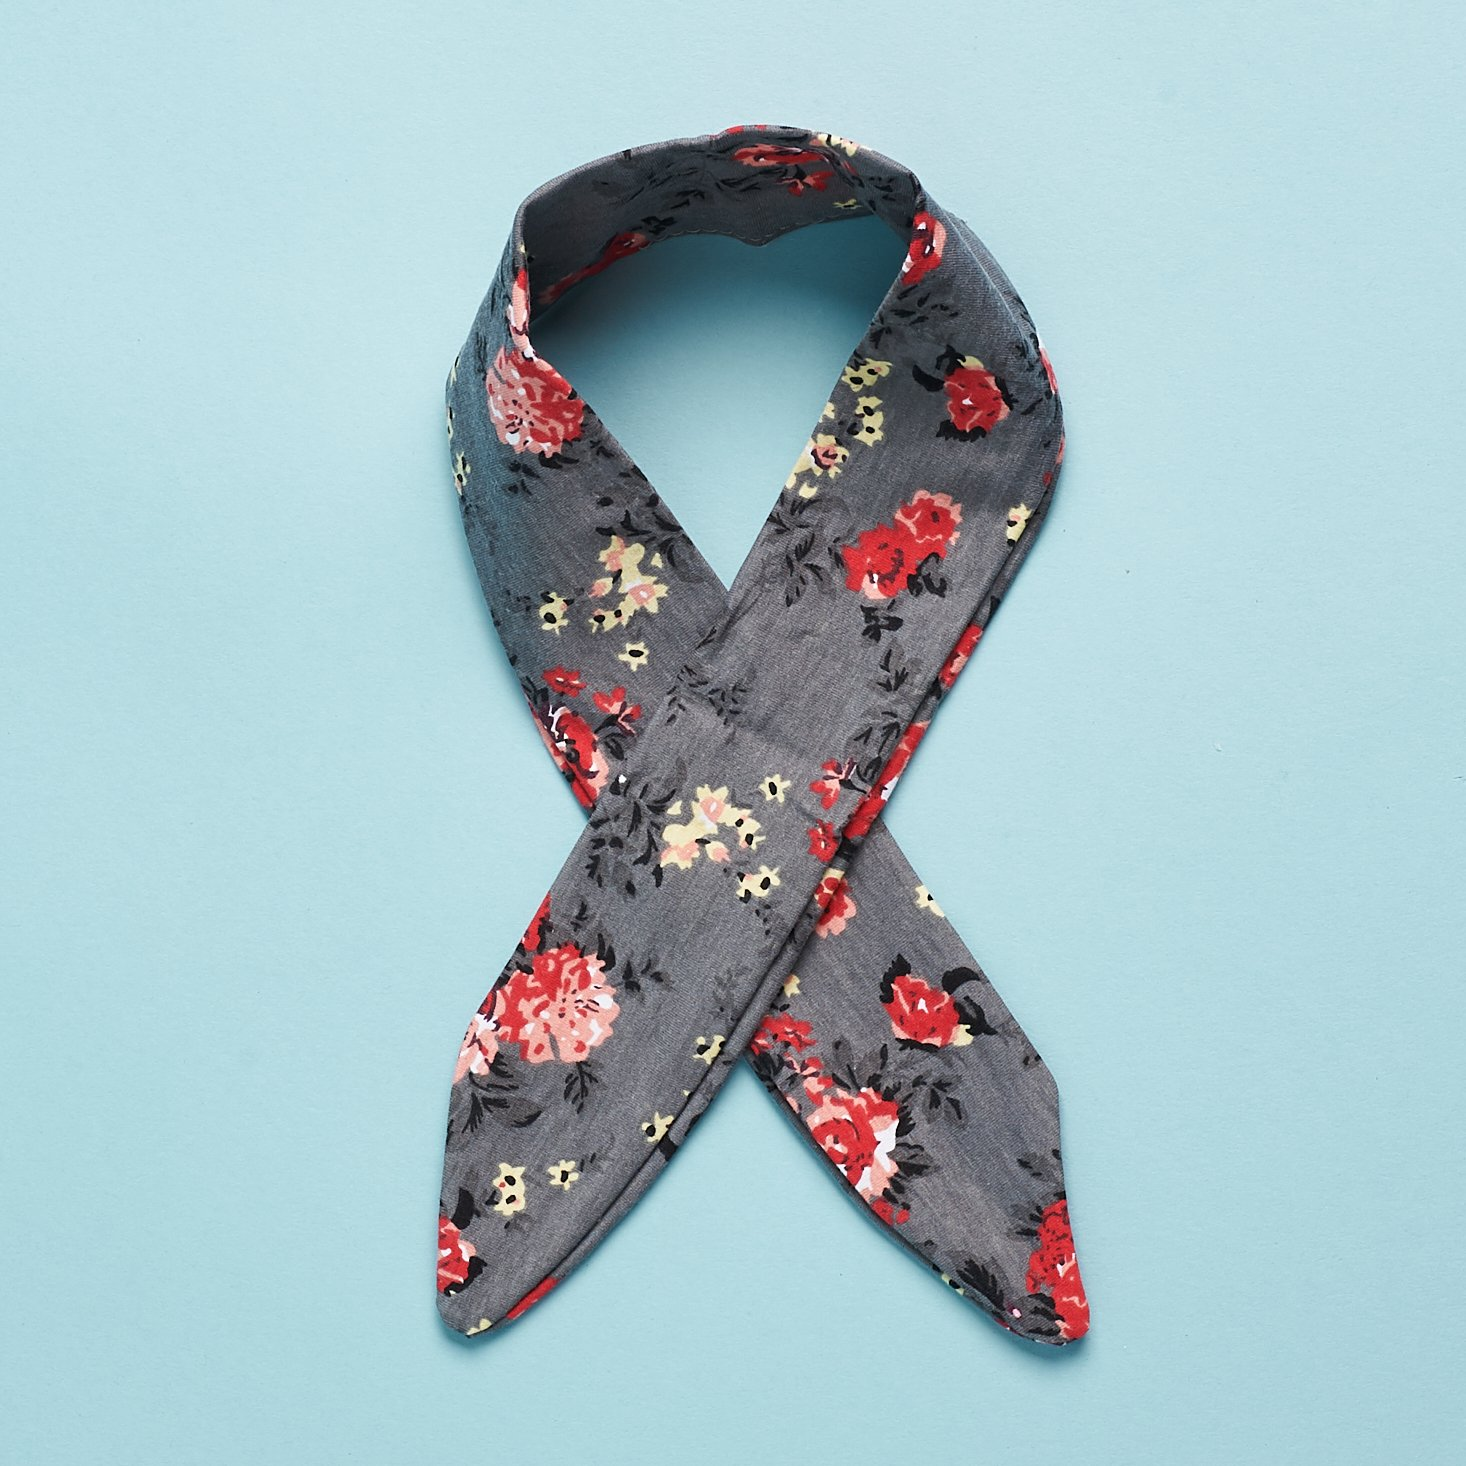 Headbands of Hope Grey Floral Knotted Headband crossed